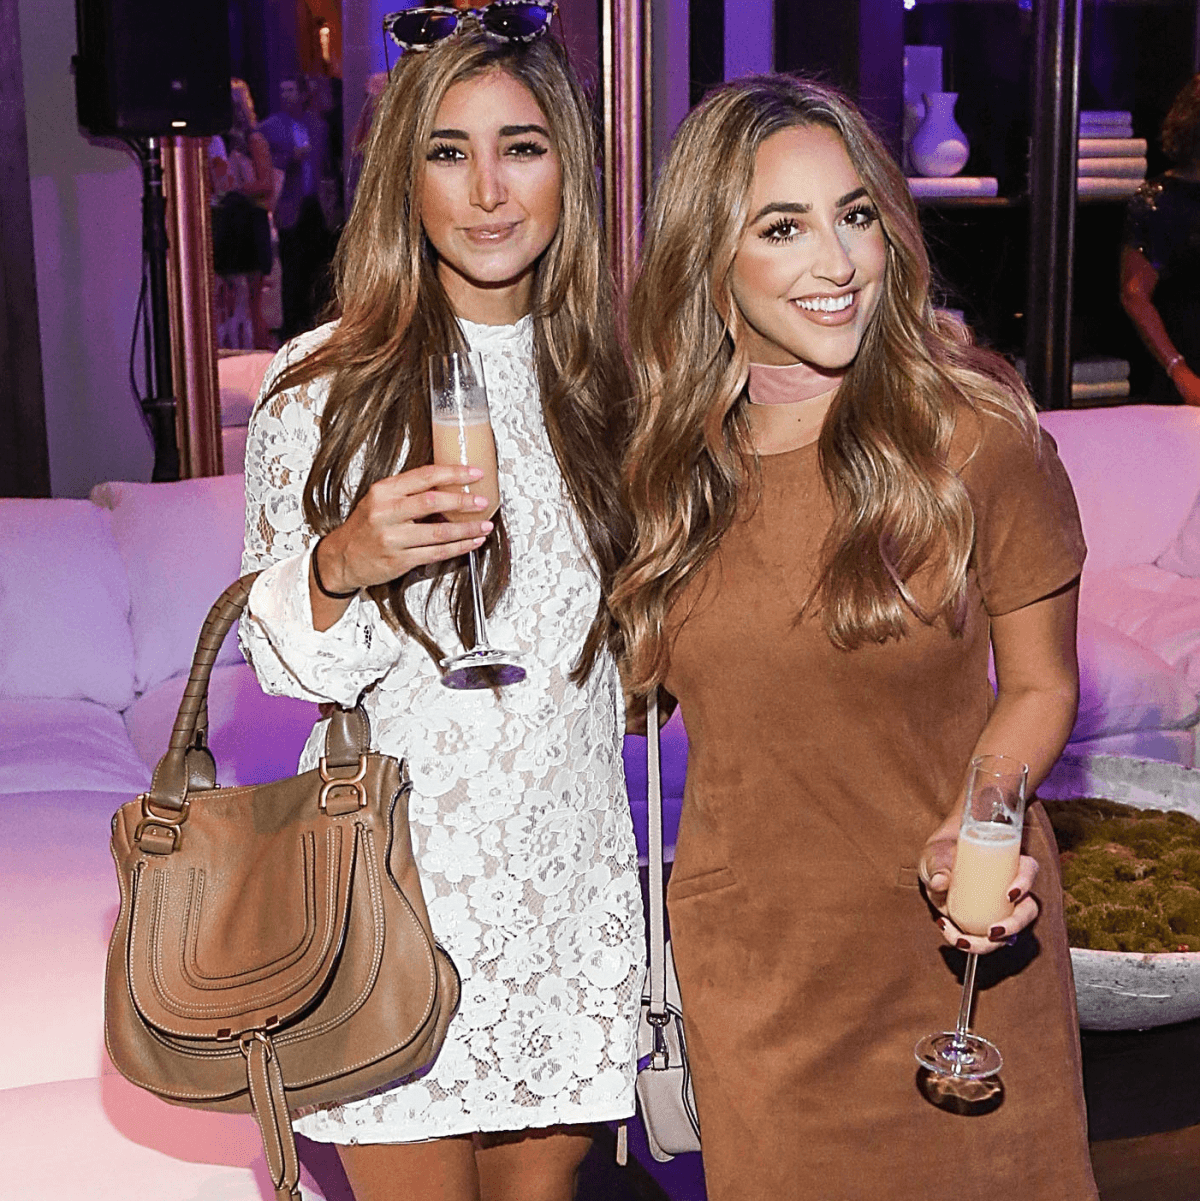 Rh Austin opening party Restoration Hardware 2016 Jessi Afhsin Courtney Shields